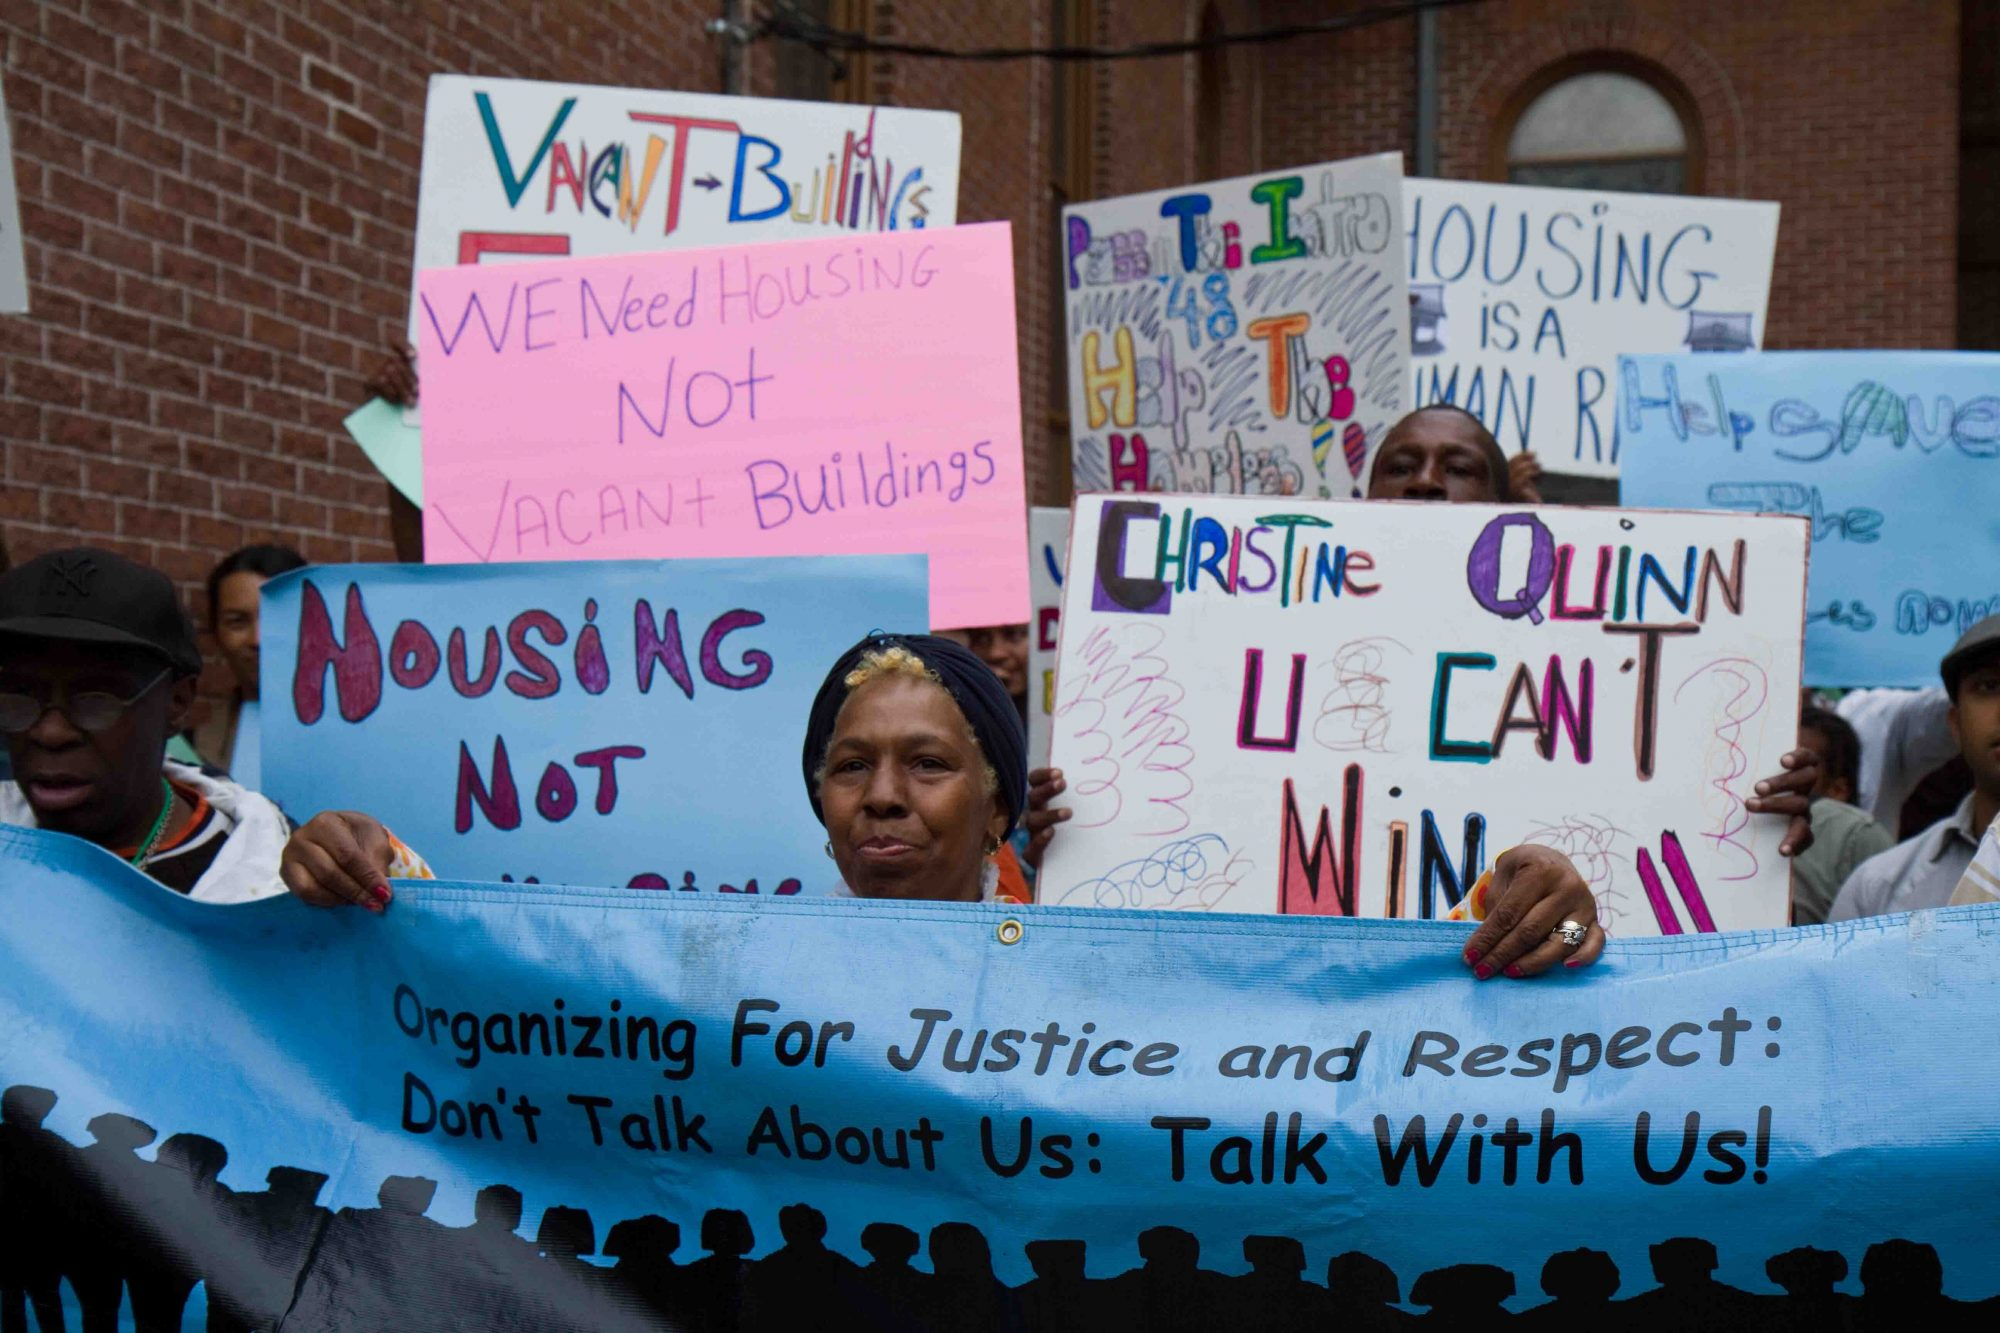 """Homeless organizers protest outside councilwoman's office with signs that read """"Organizing for Justice and Respect"""" and """"We Need Housing, not Warehousing."""""""